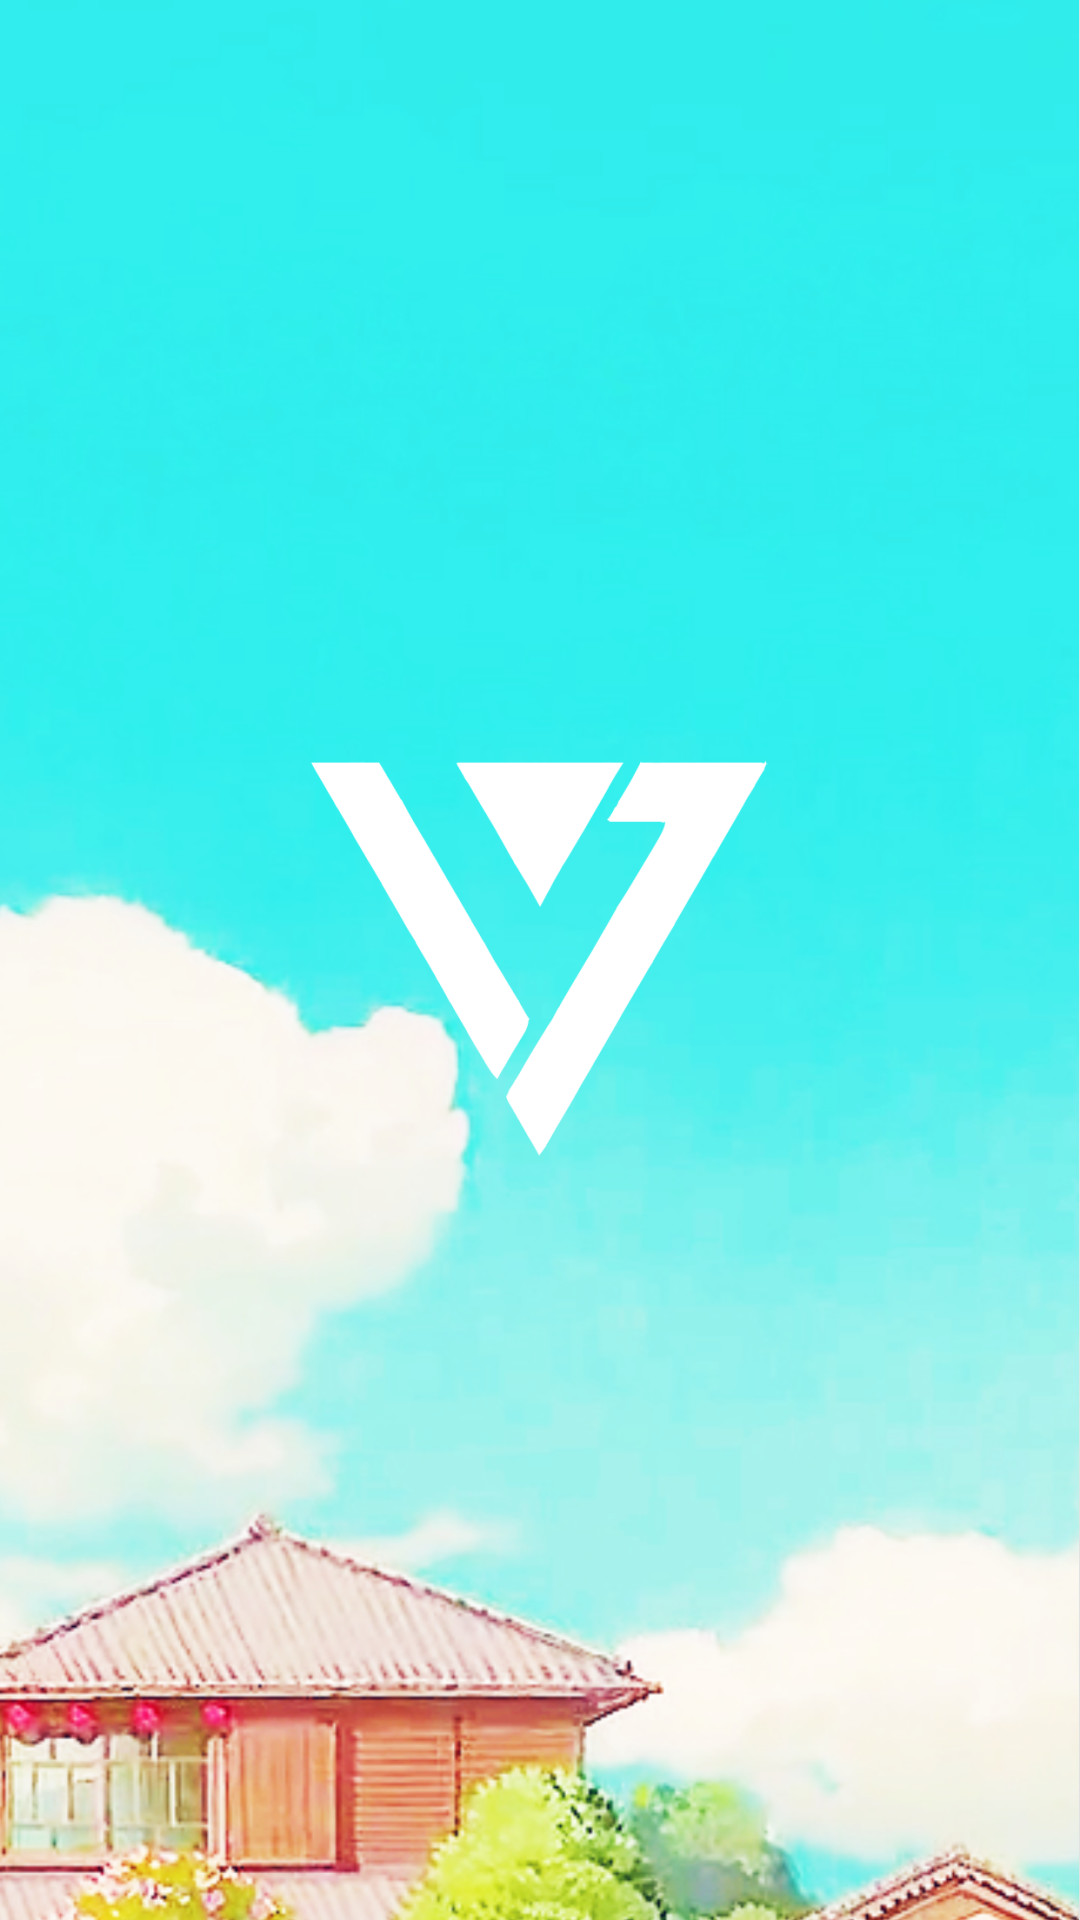 1080x1920 seventeen svt 17 kpop seventeen logo seventeen wallpaper seventeen  background kpop wallpaper kpop background kpop screensaver